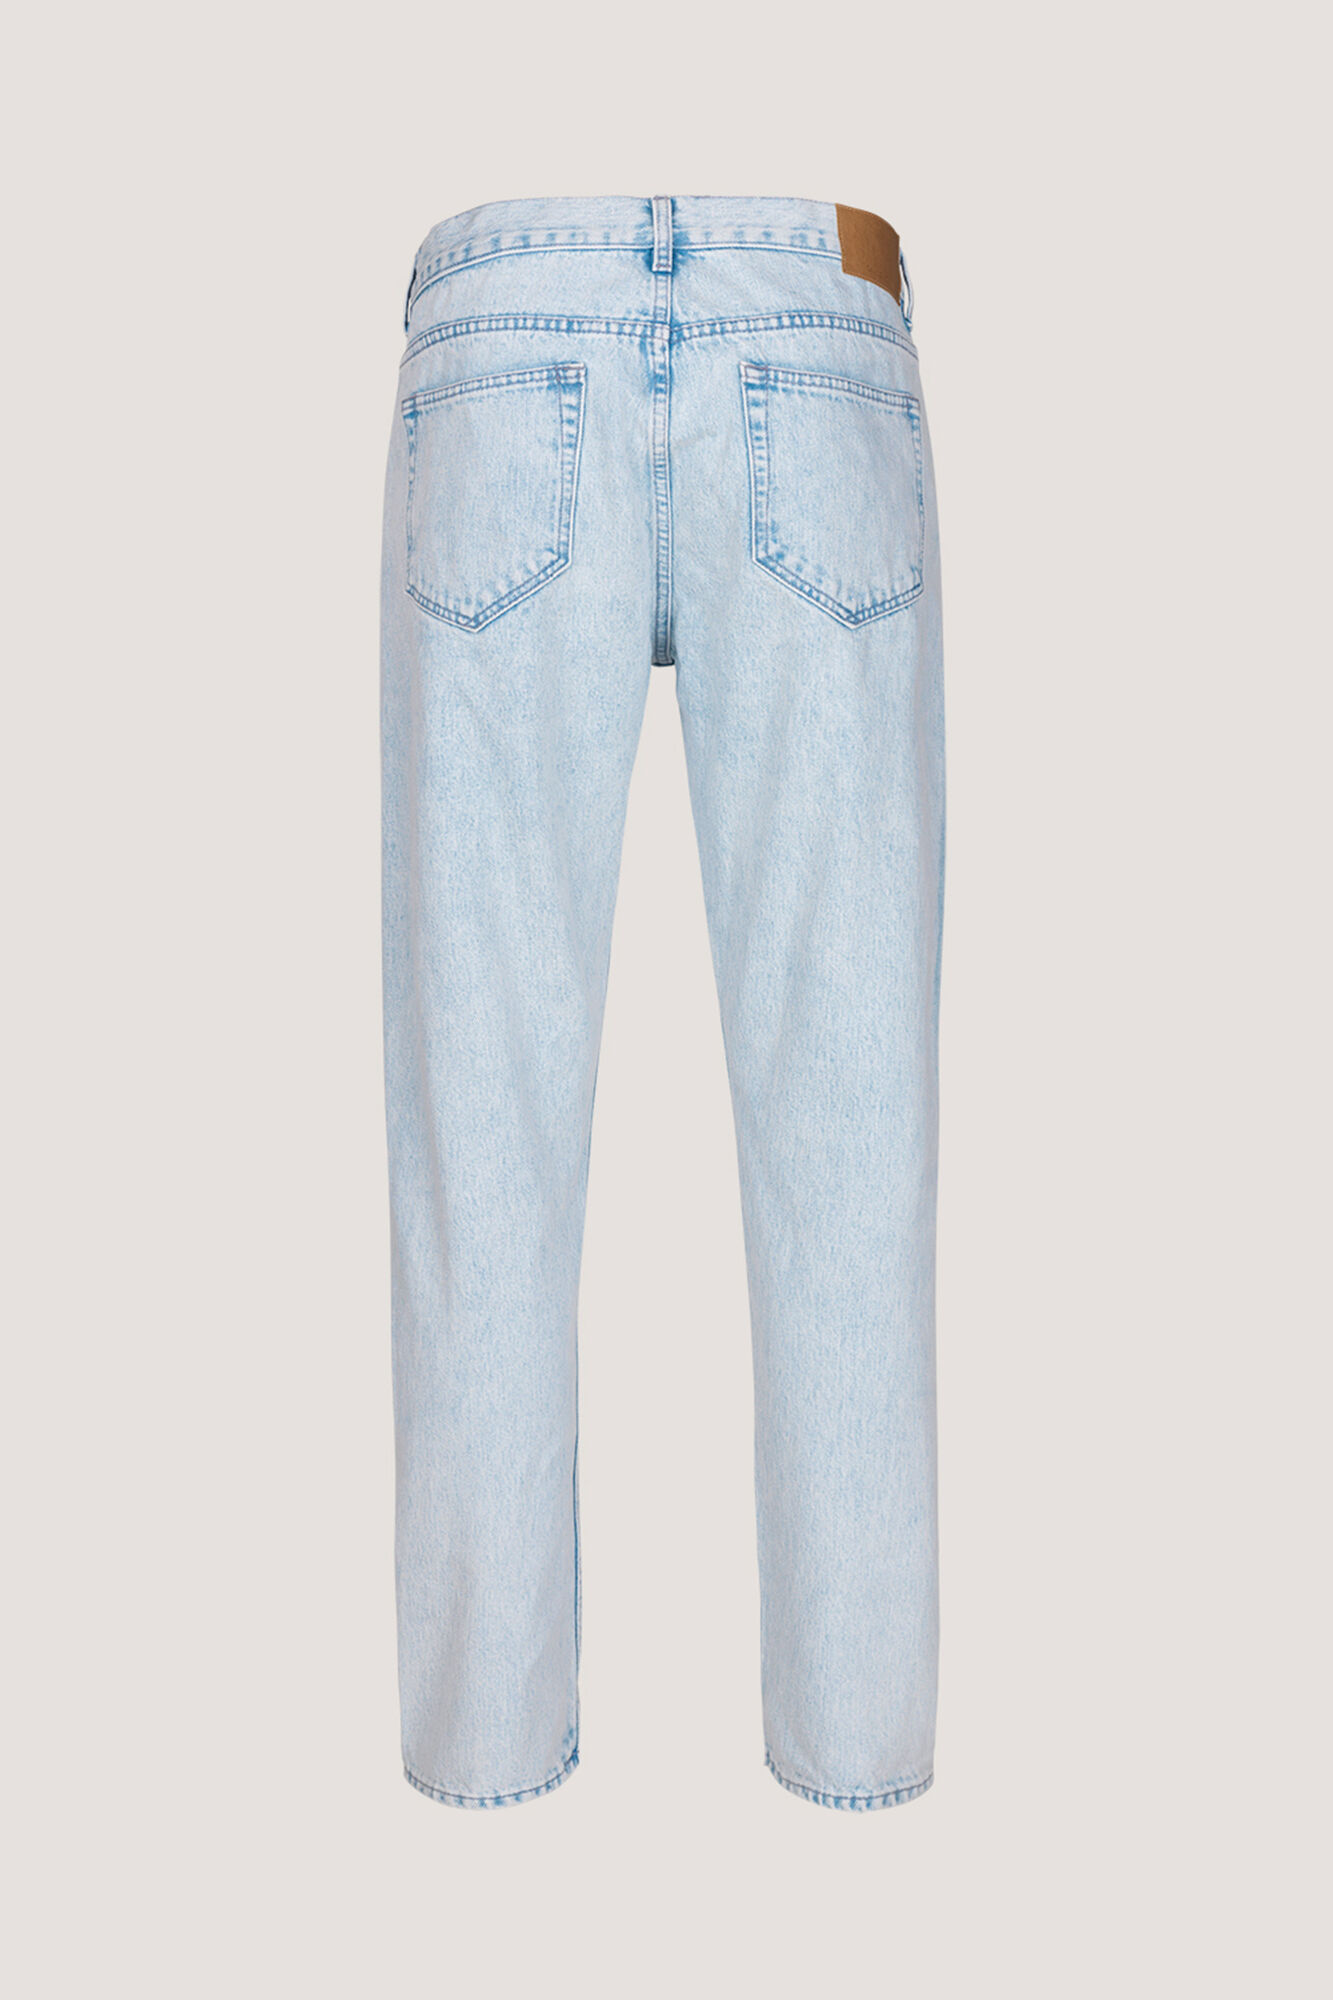 Cosmo jeans 9808